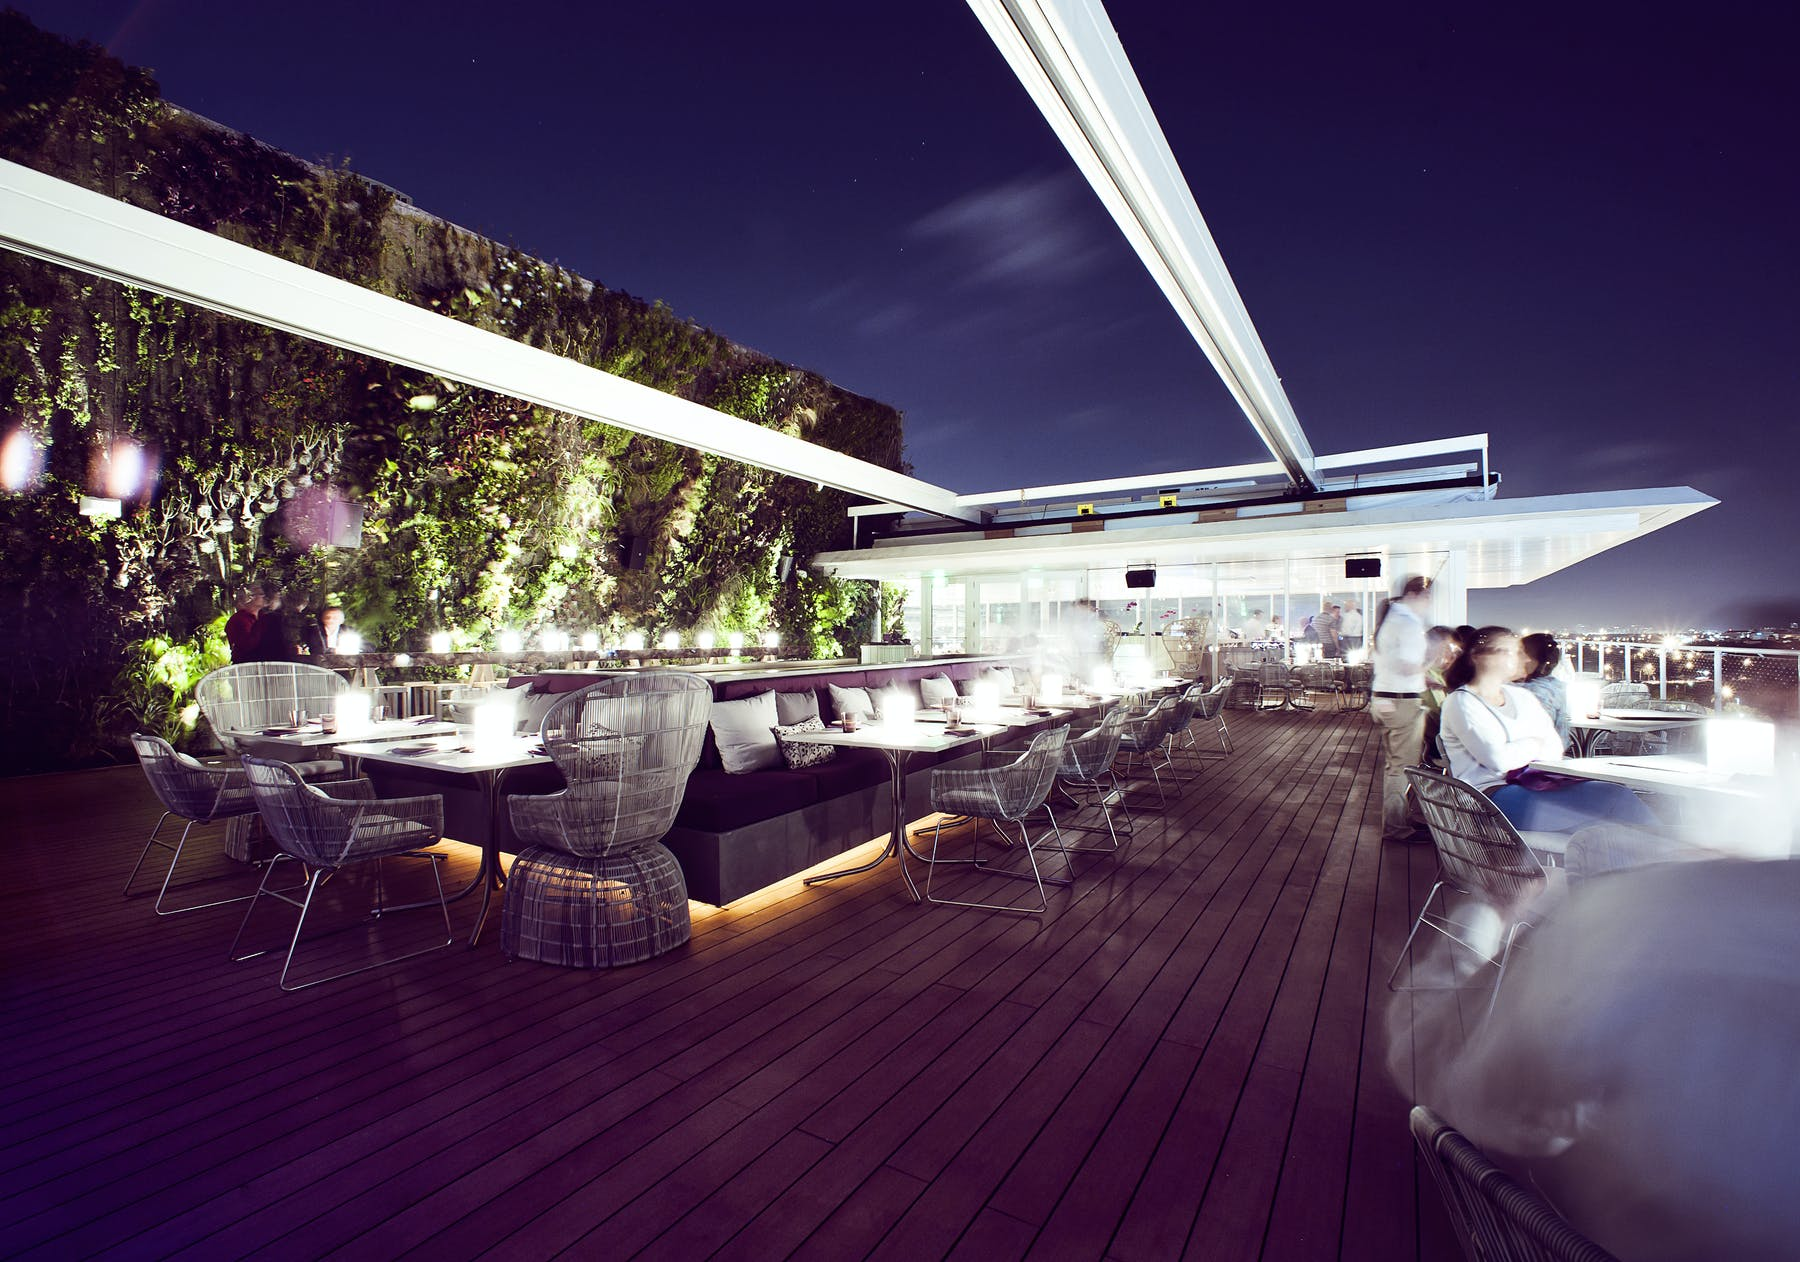 an extensive patio at night filled with lighten up tables and chairs